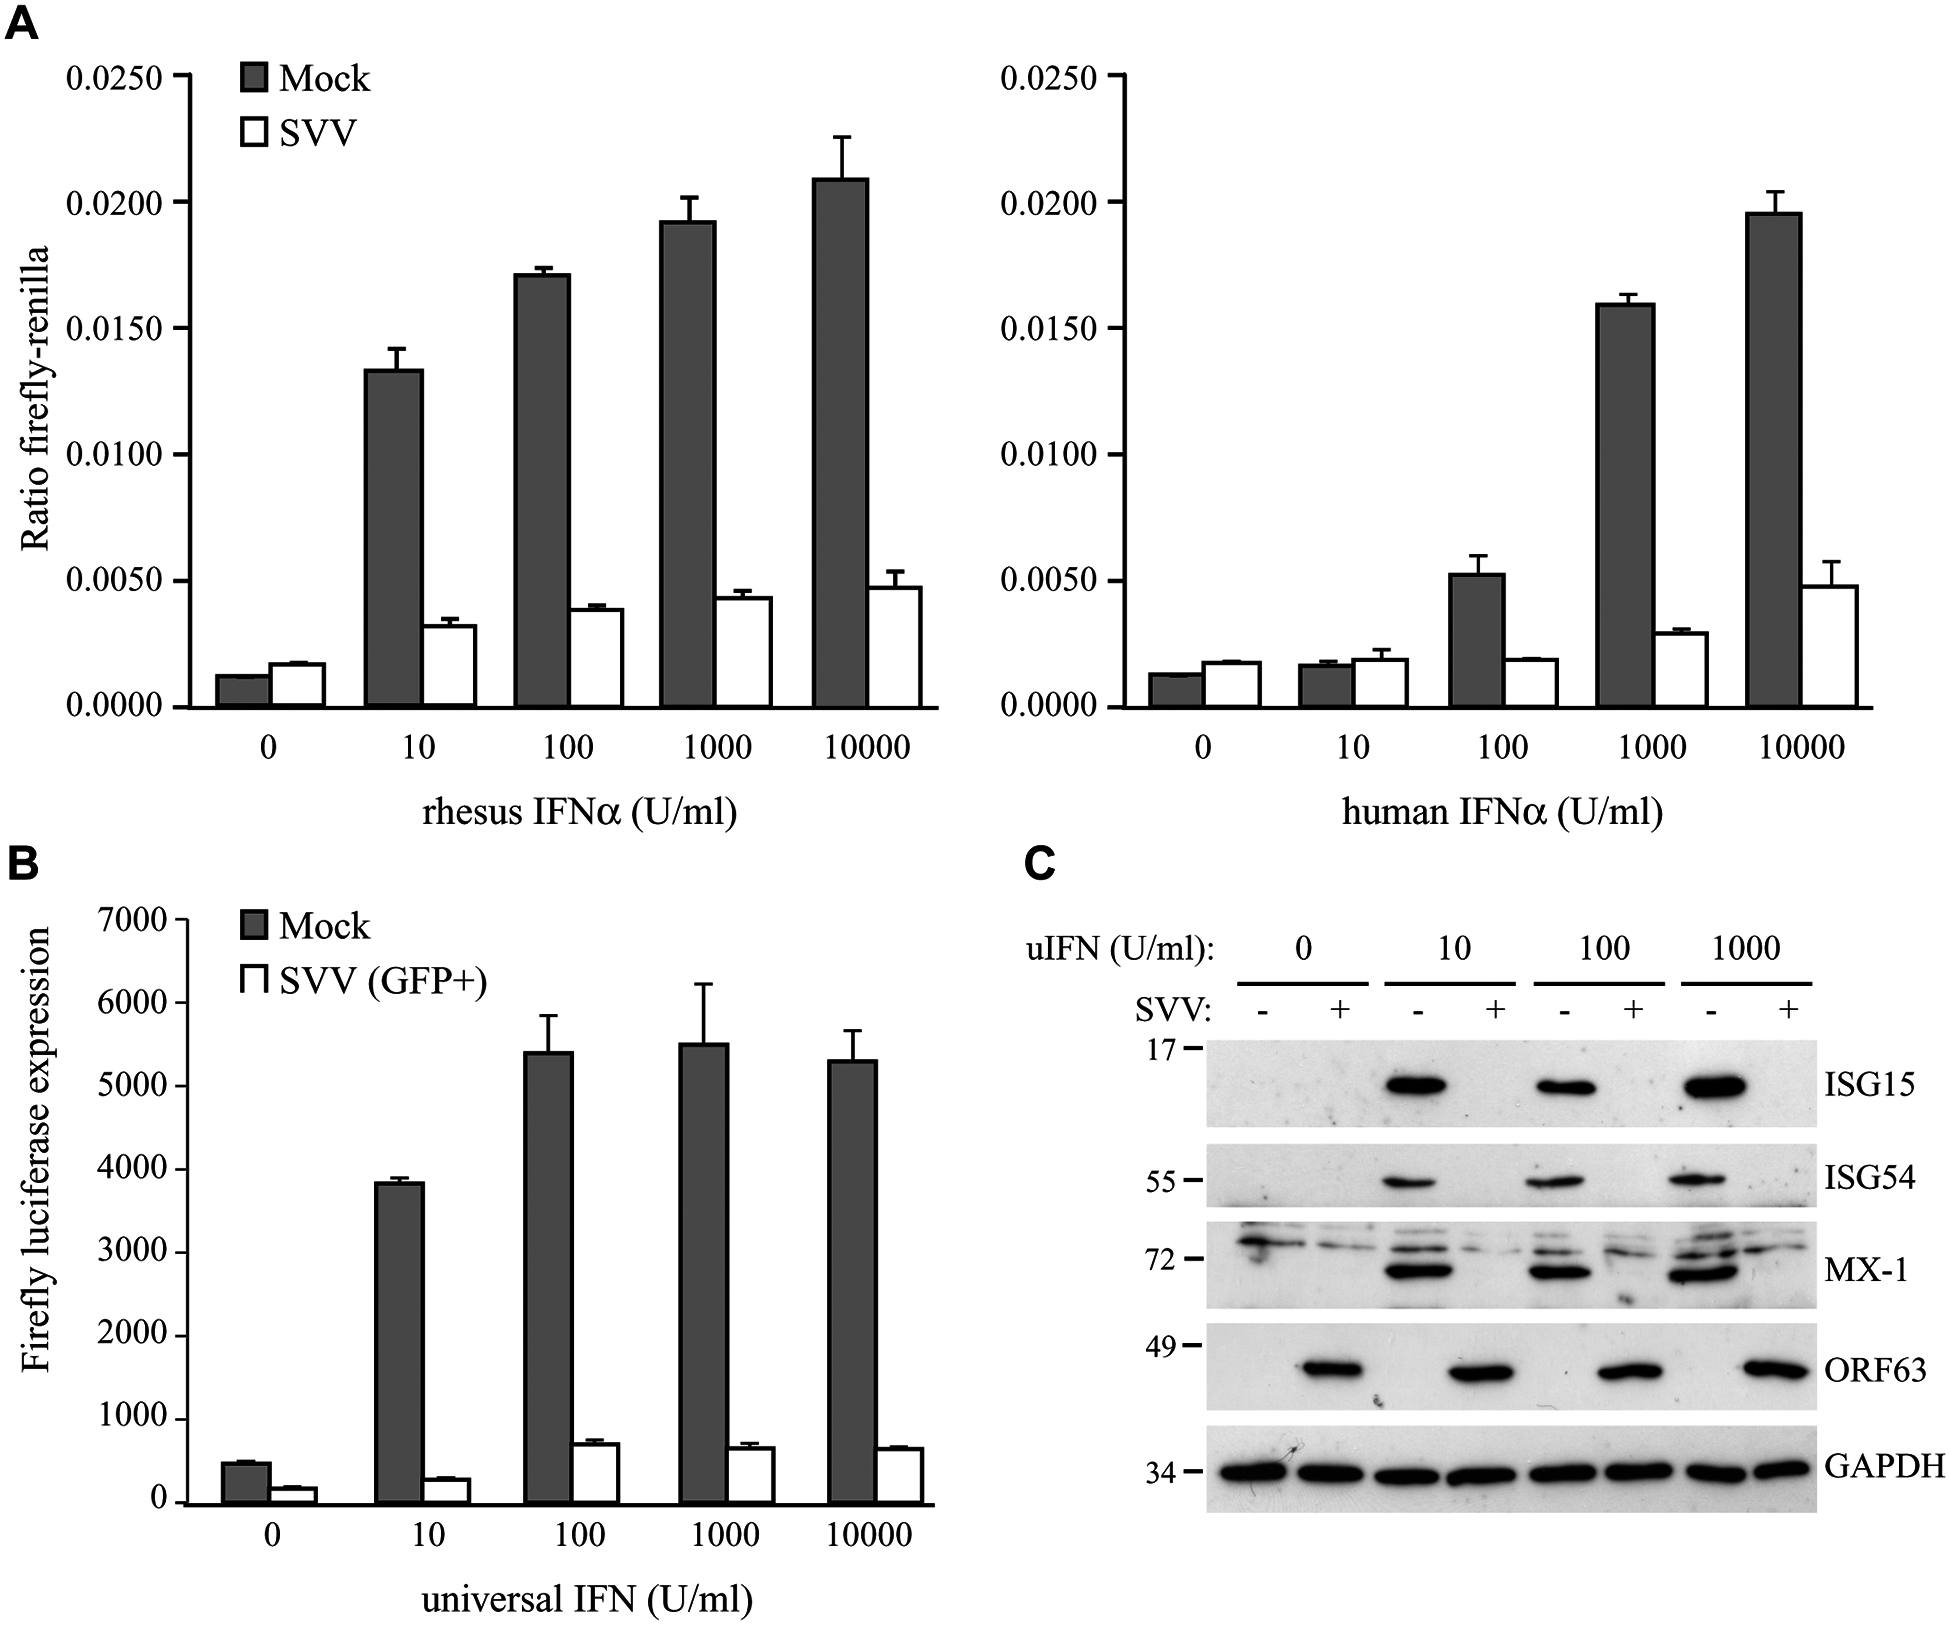 SVV inhibits IFN-induced ISG expression.